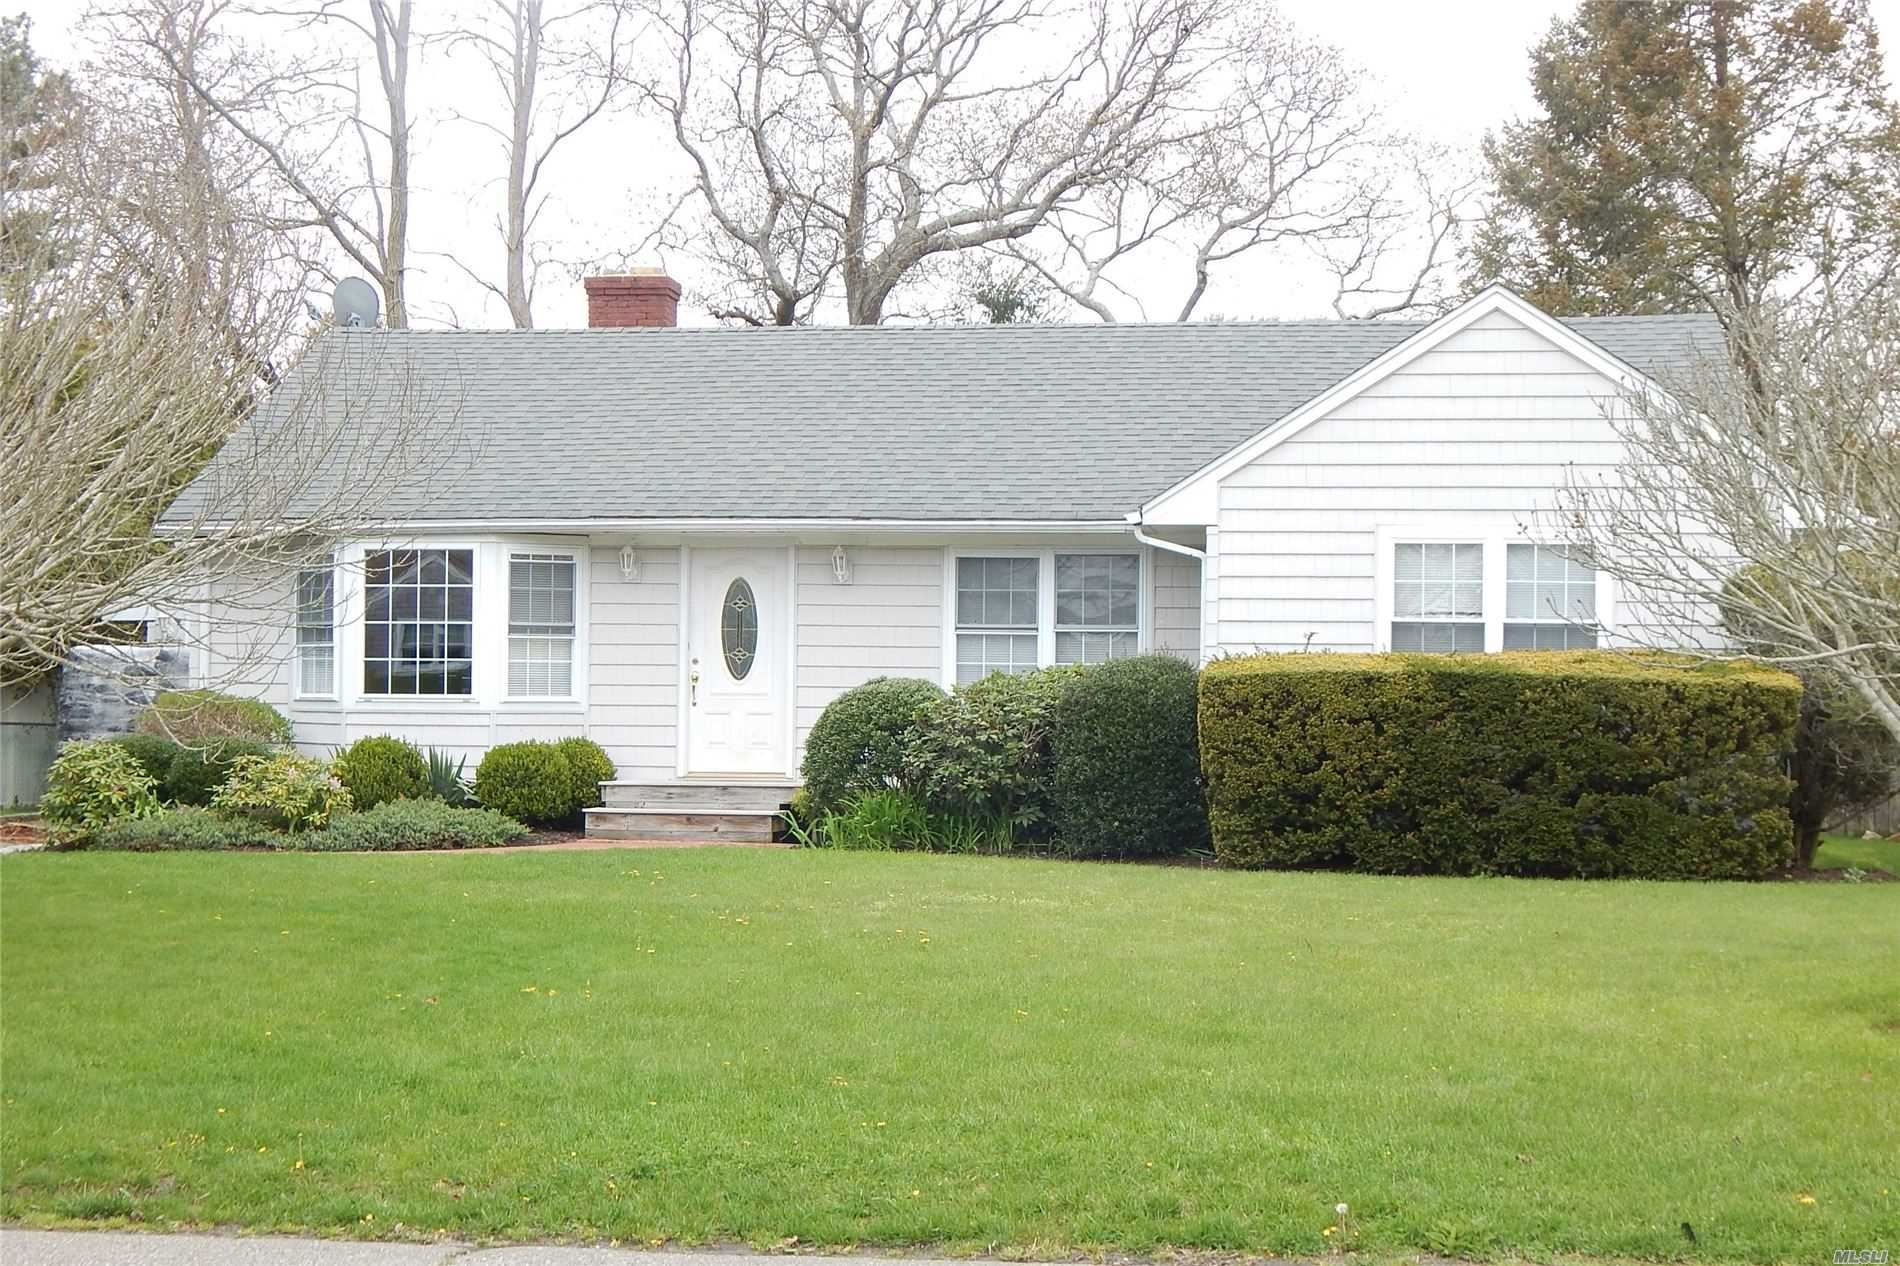 15 Maple Street, Westhampton Beach, NY 11978 - MLS#: 3180137